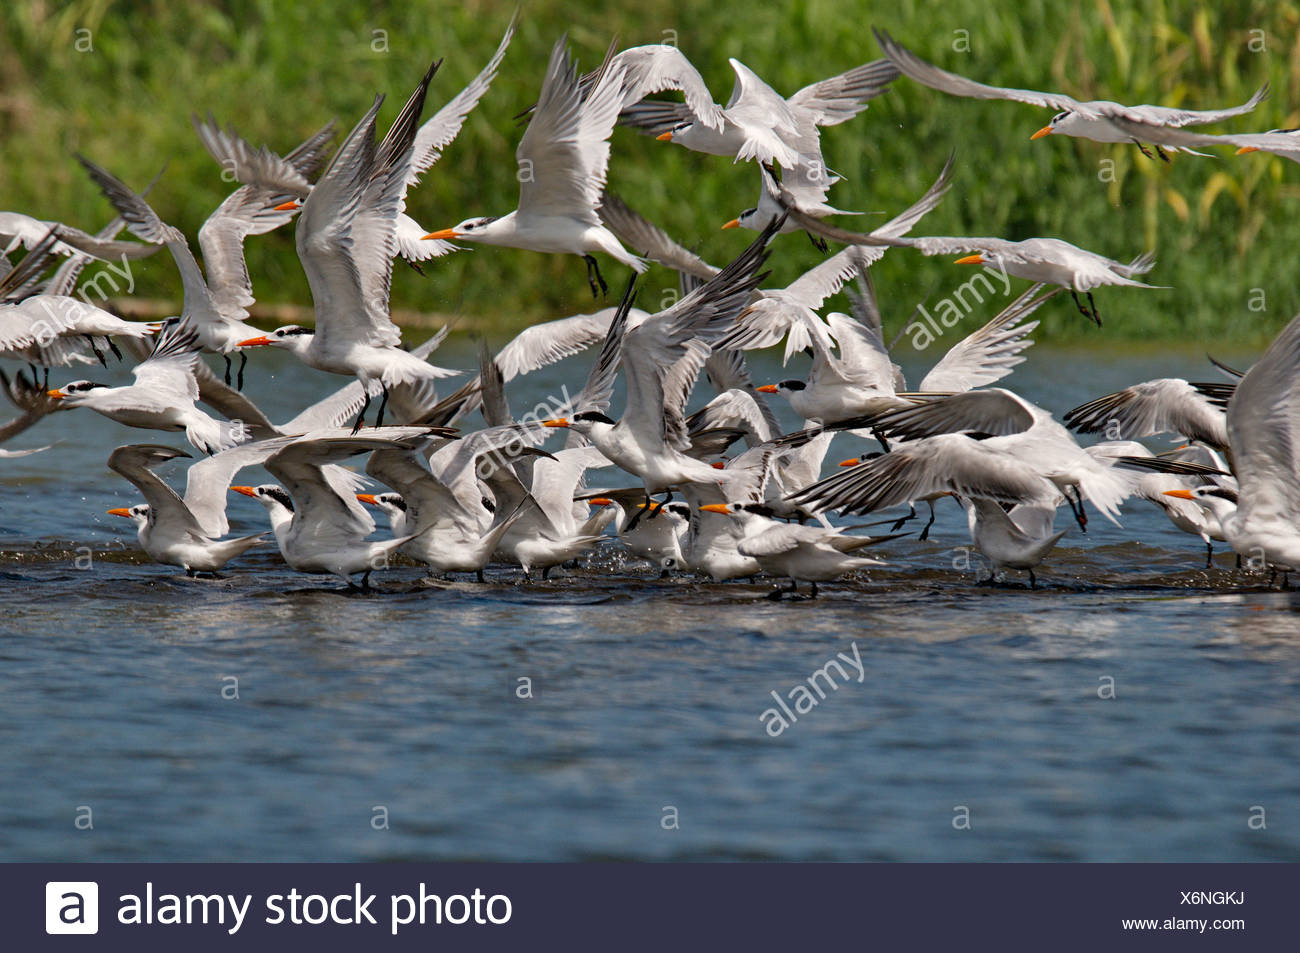 tern, terns, Sternidae, Laridae, bird, birds, animal, animals, fauna, wildlife, wild animal, nature, Costa Rica, tropical - Stock Image